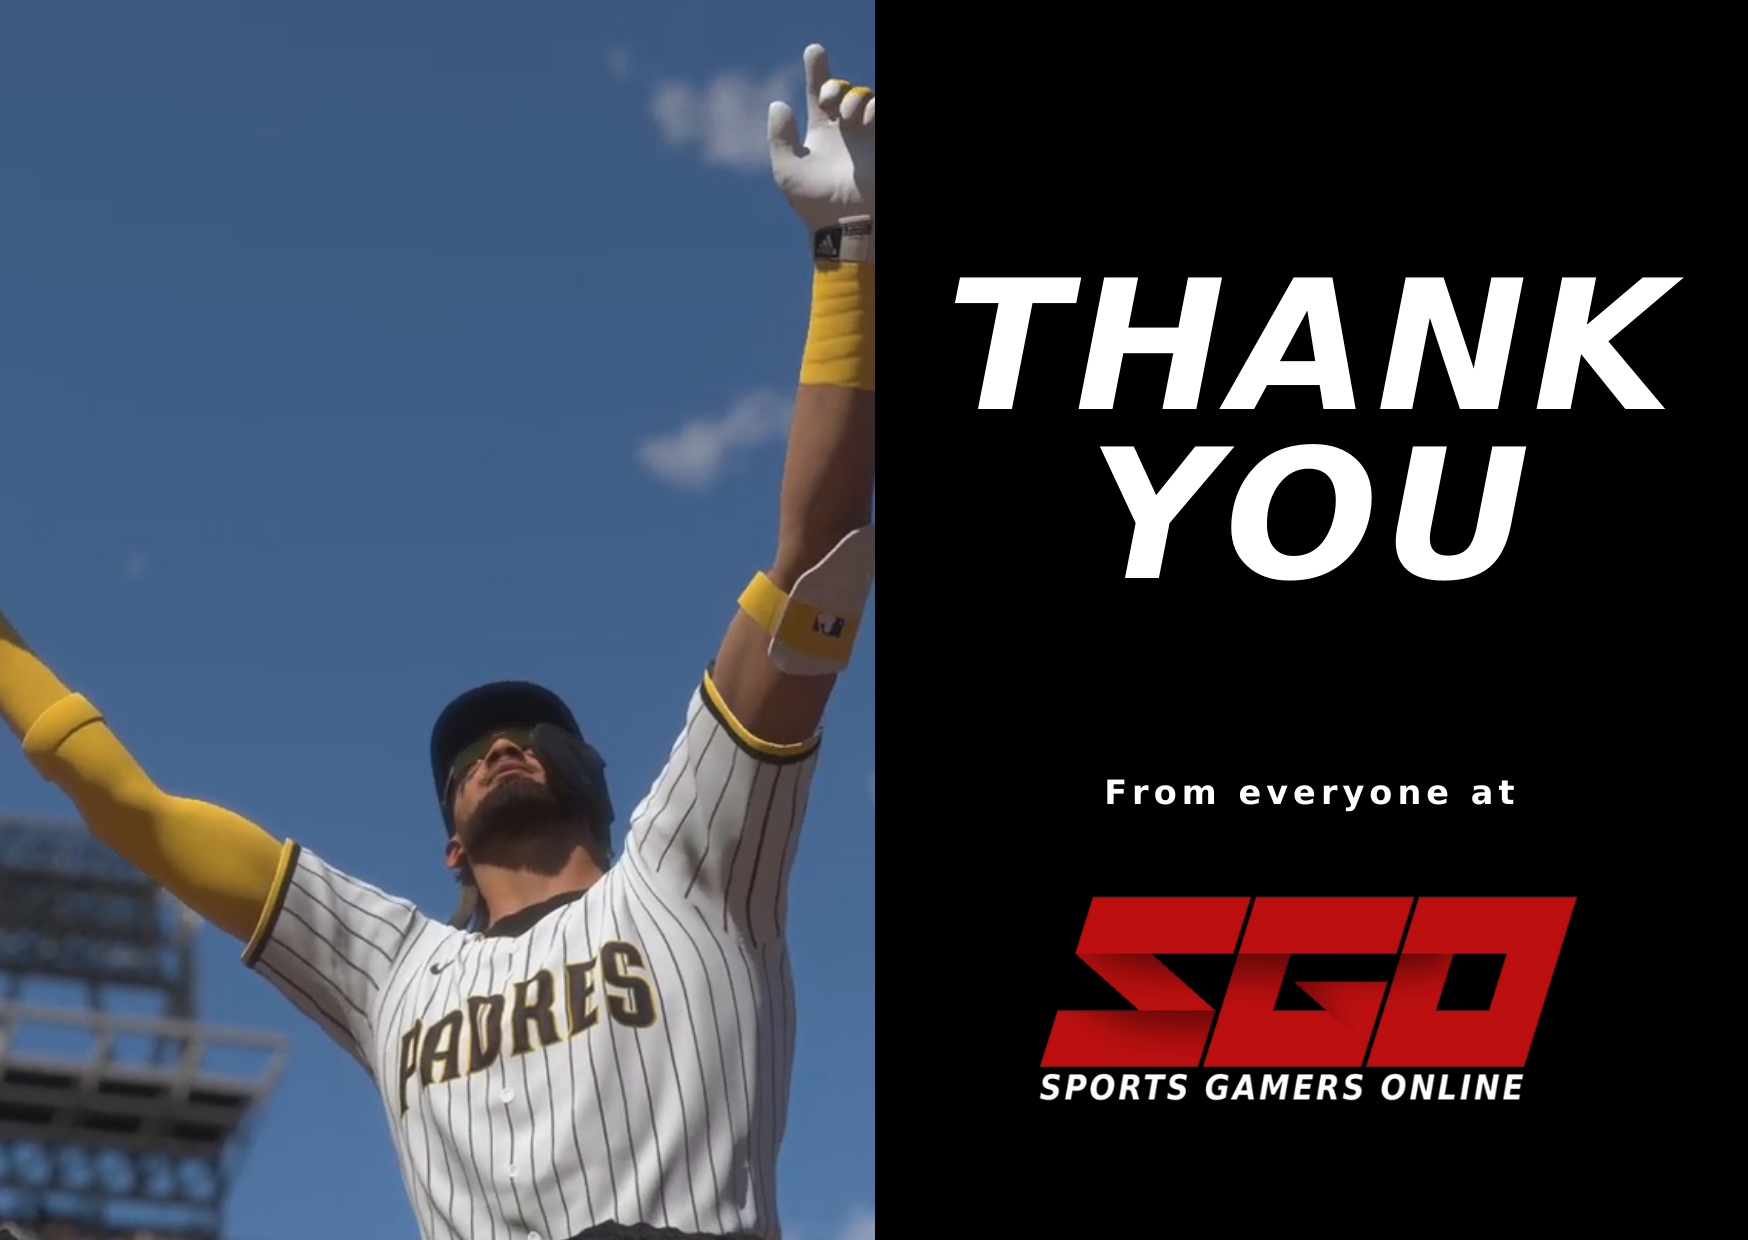 Sports Gamers Online Thank You